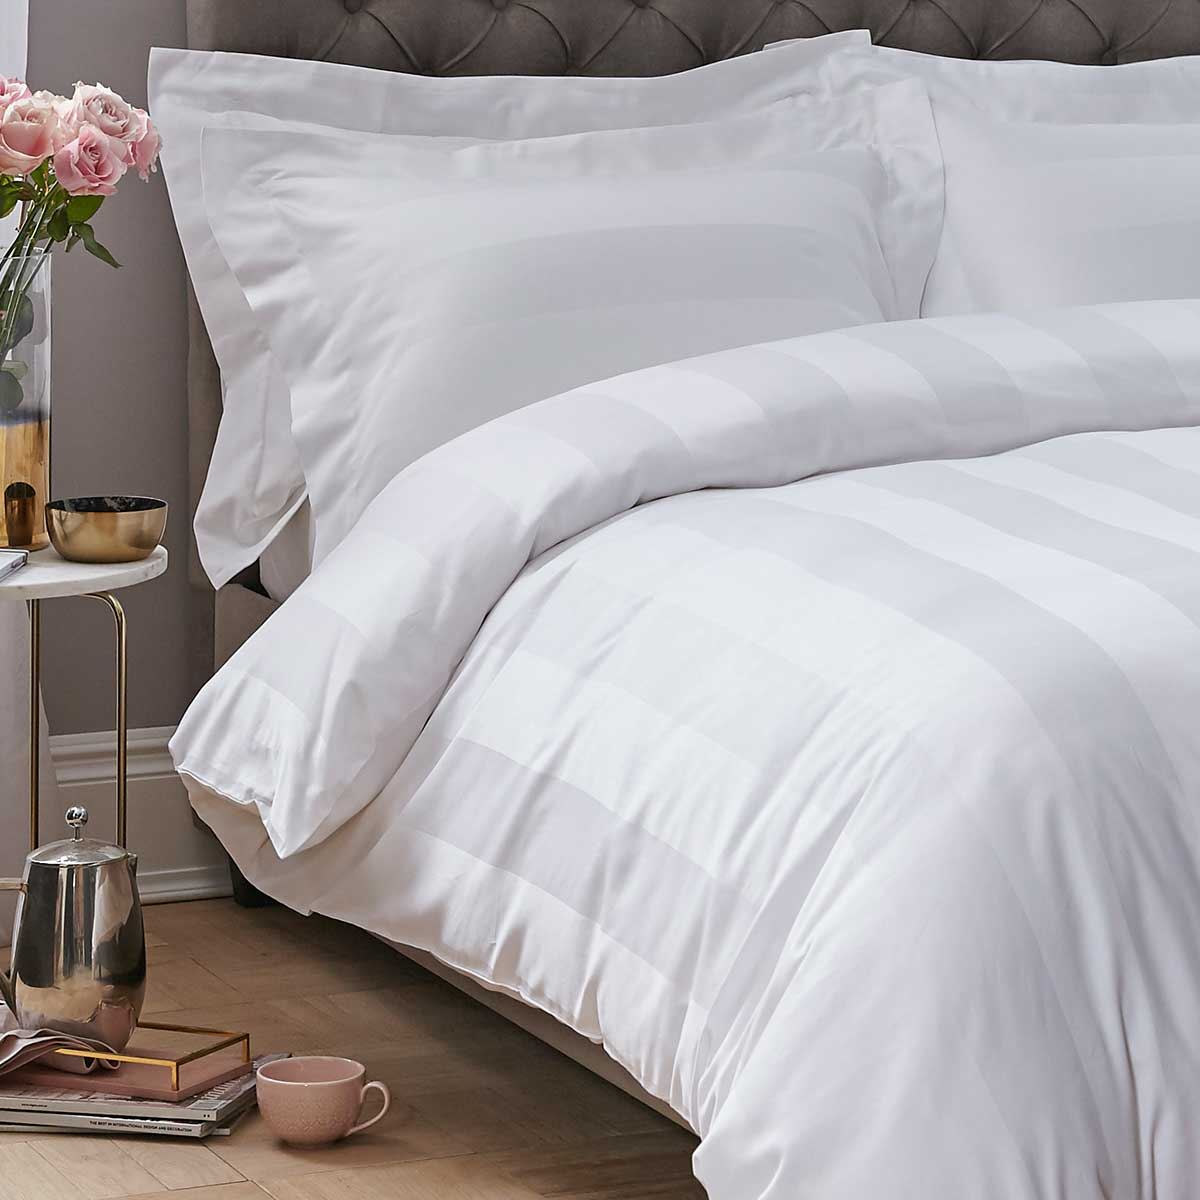 Cotton Duvet Covers Can Provide Real Comfort